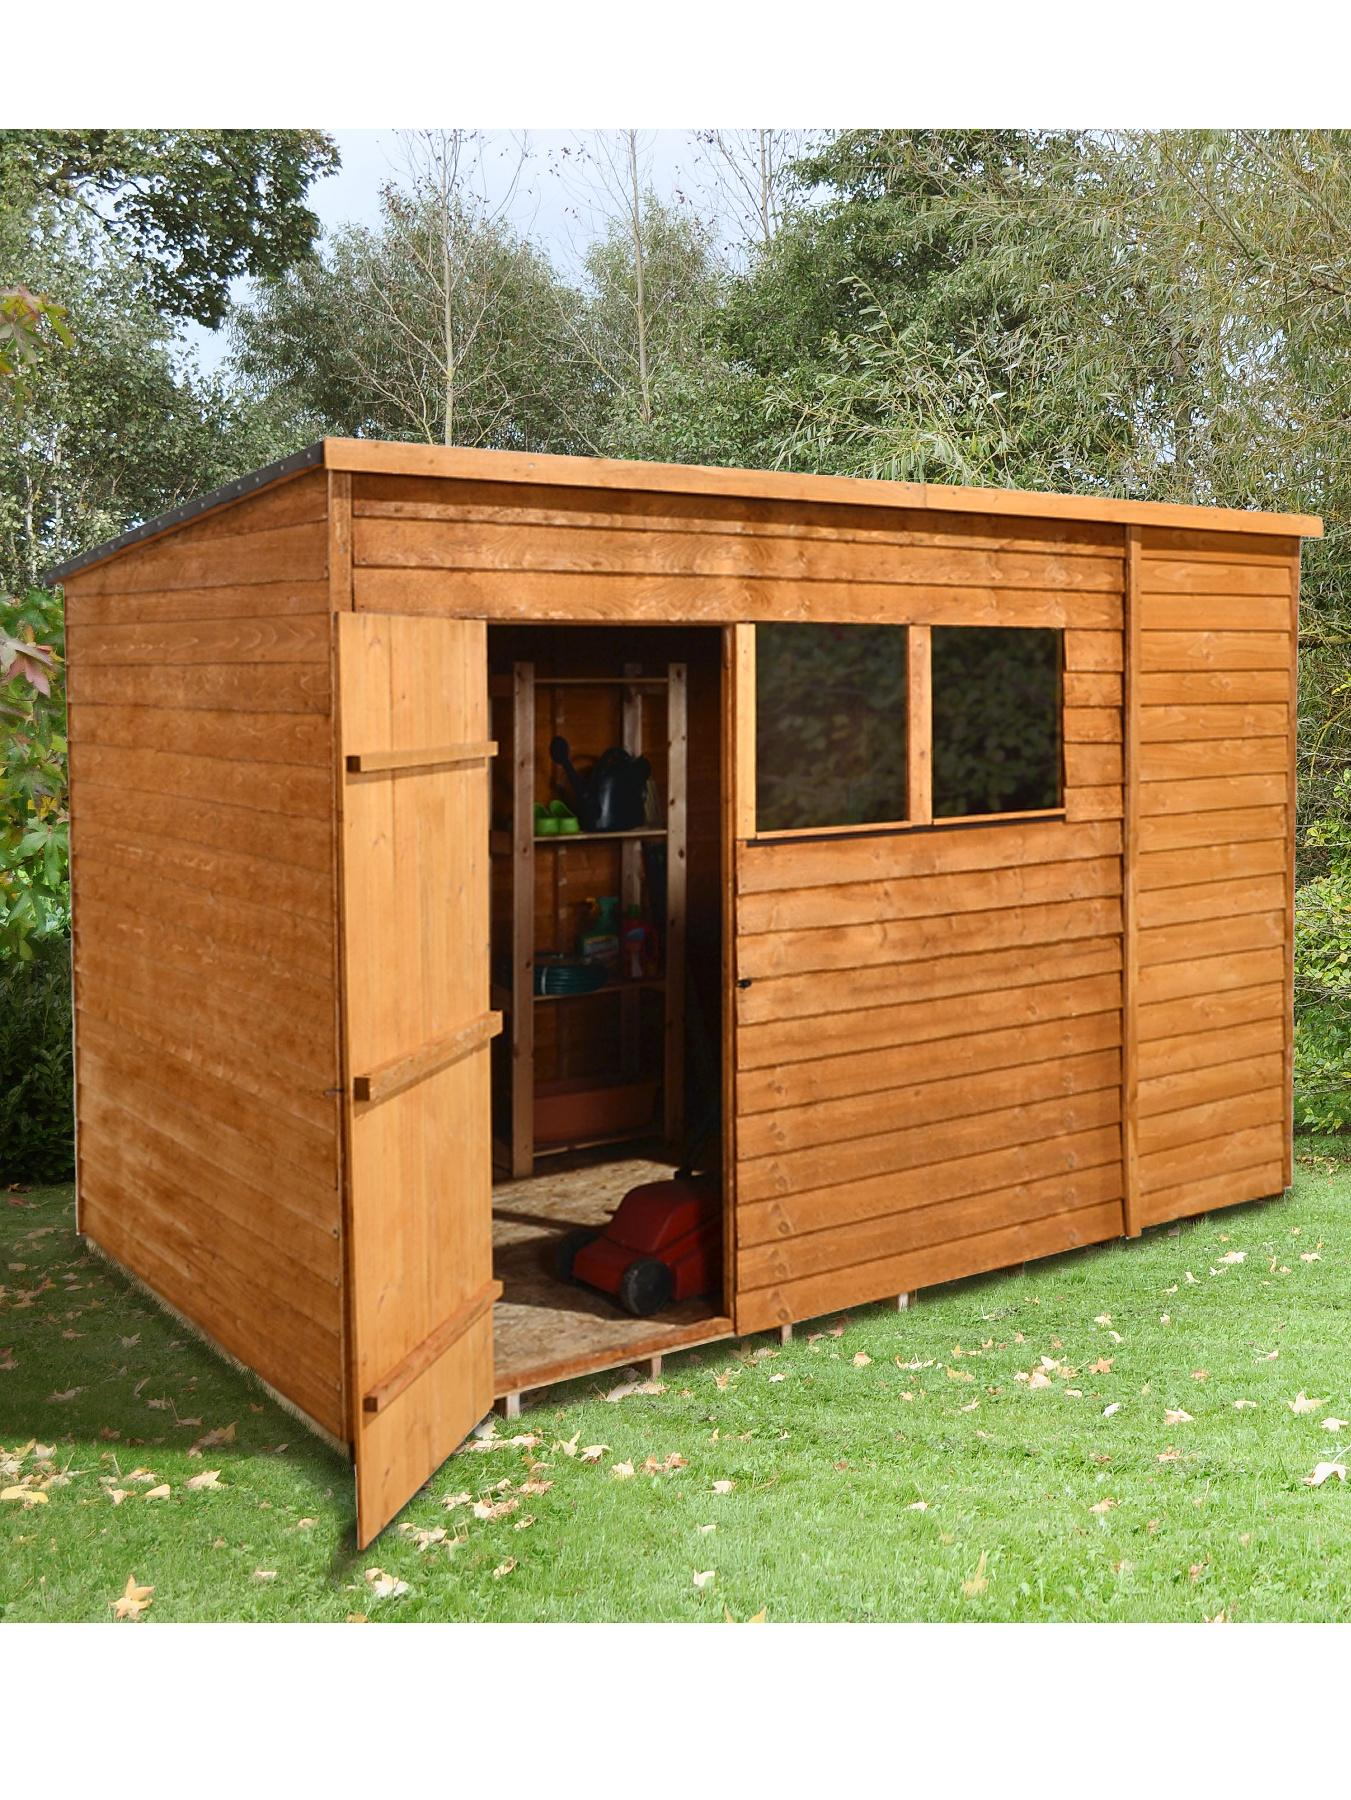 FOREST 10 x 6ft Overlap Pent Shed with Optional Assembly